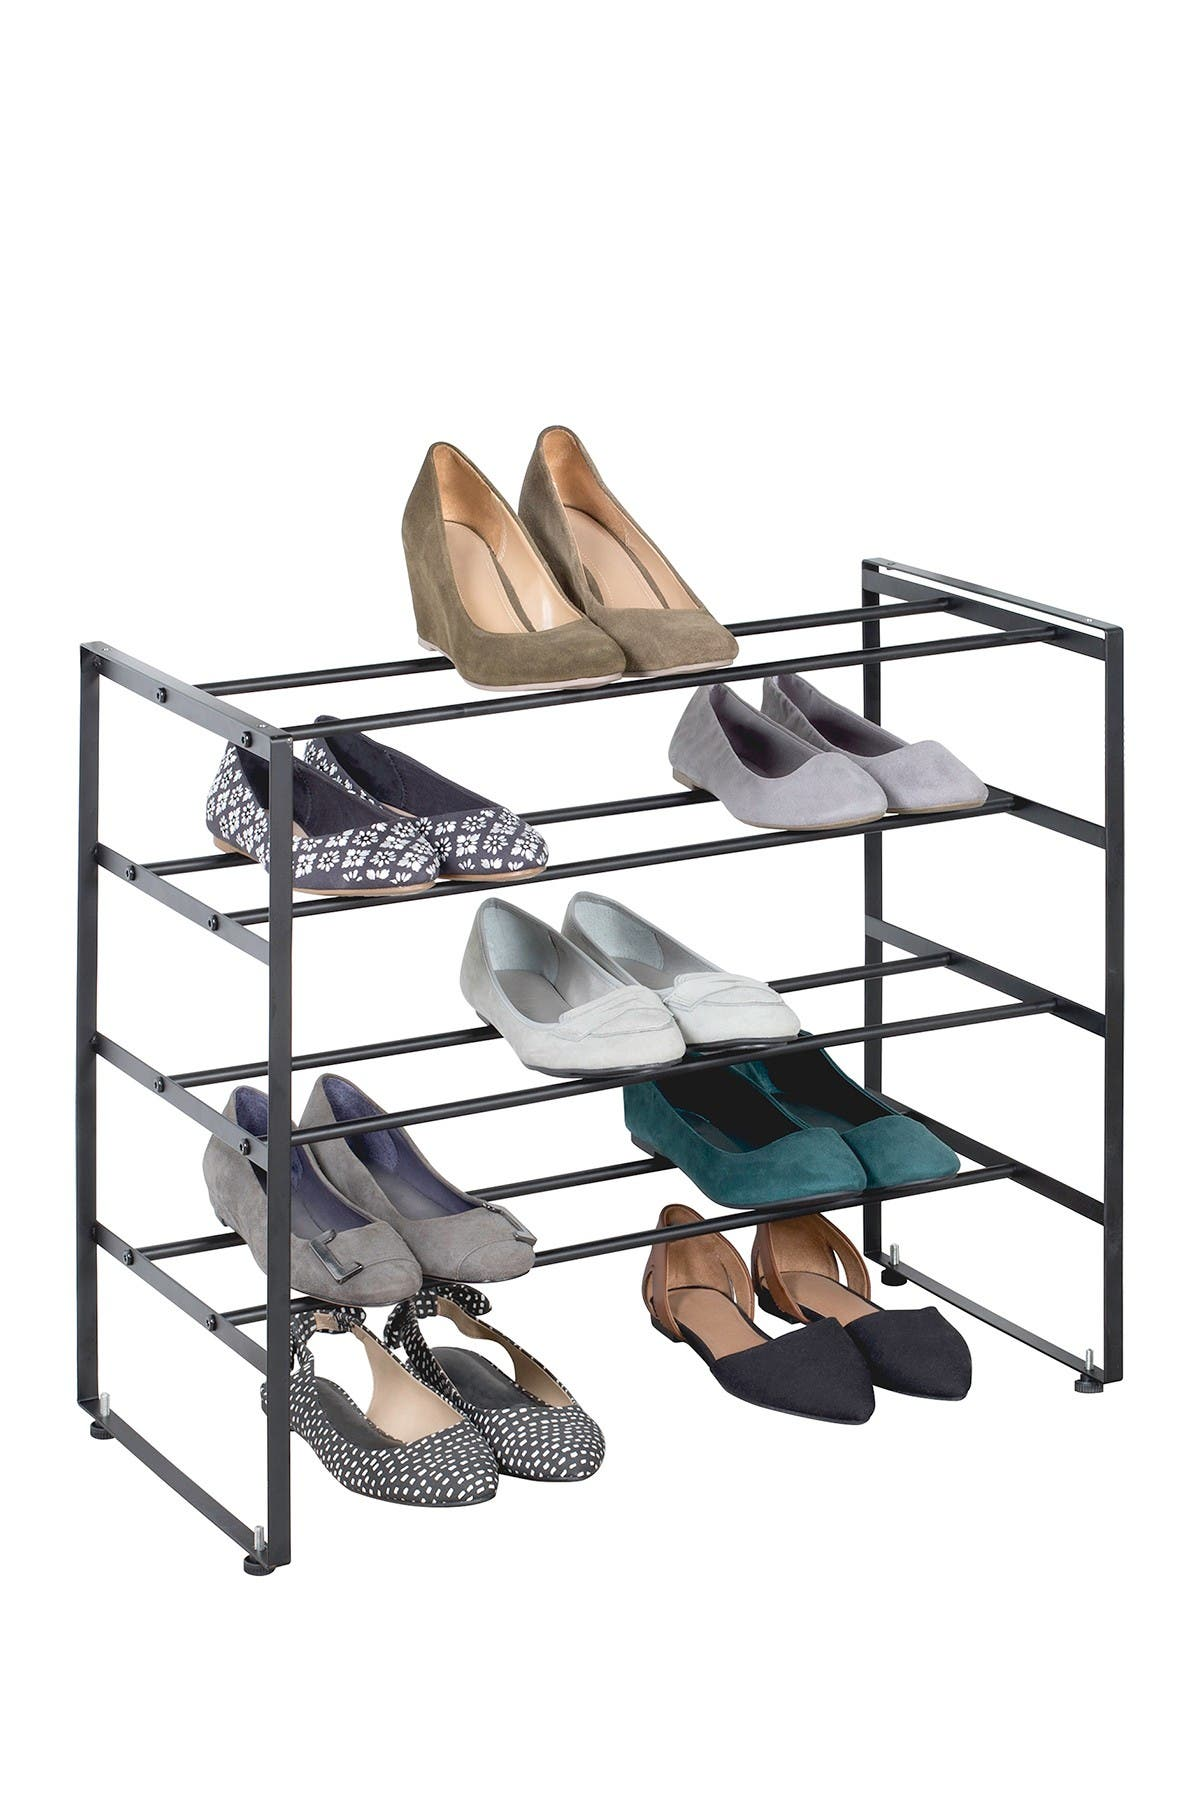 Image of RICHARDS HOMEWARES Black Matte 4-Tier Shoe Rack